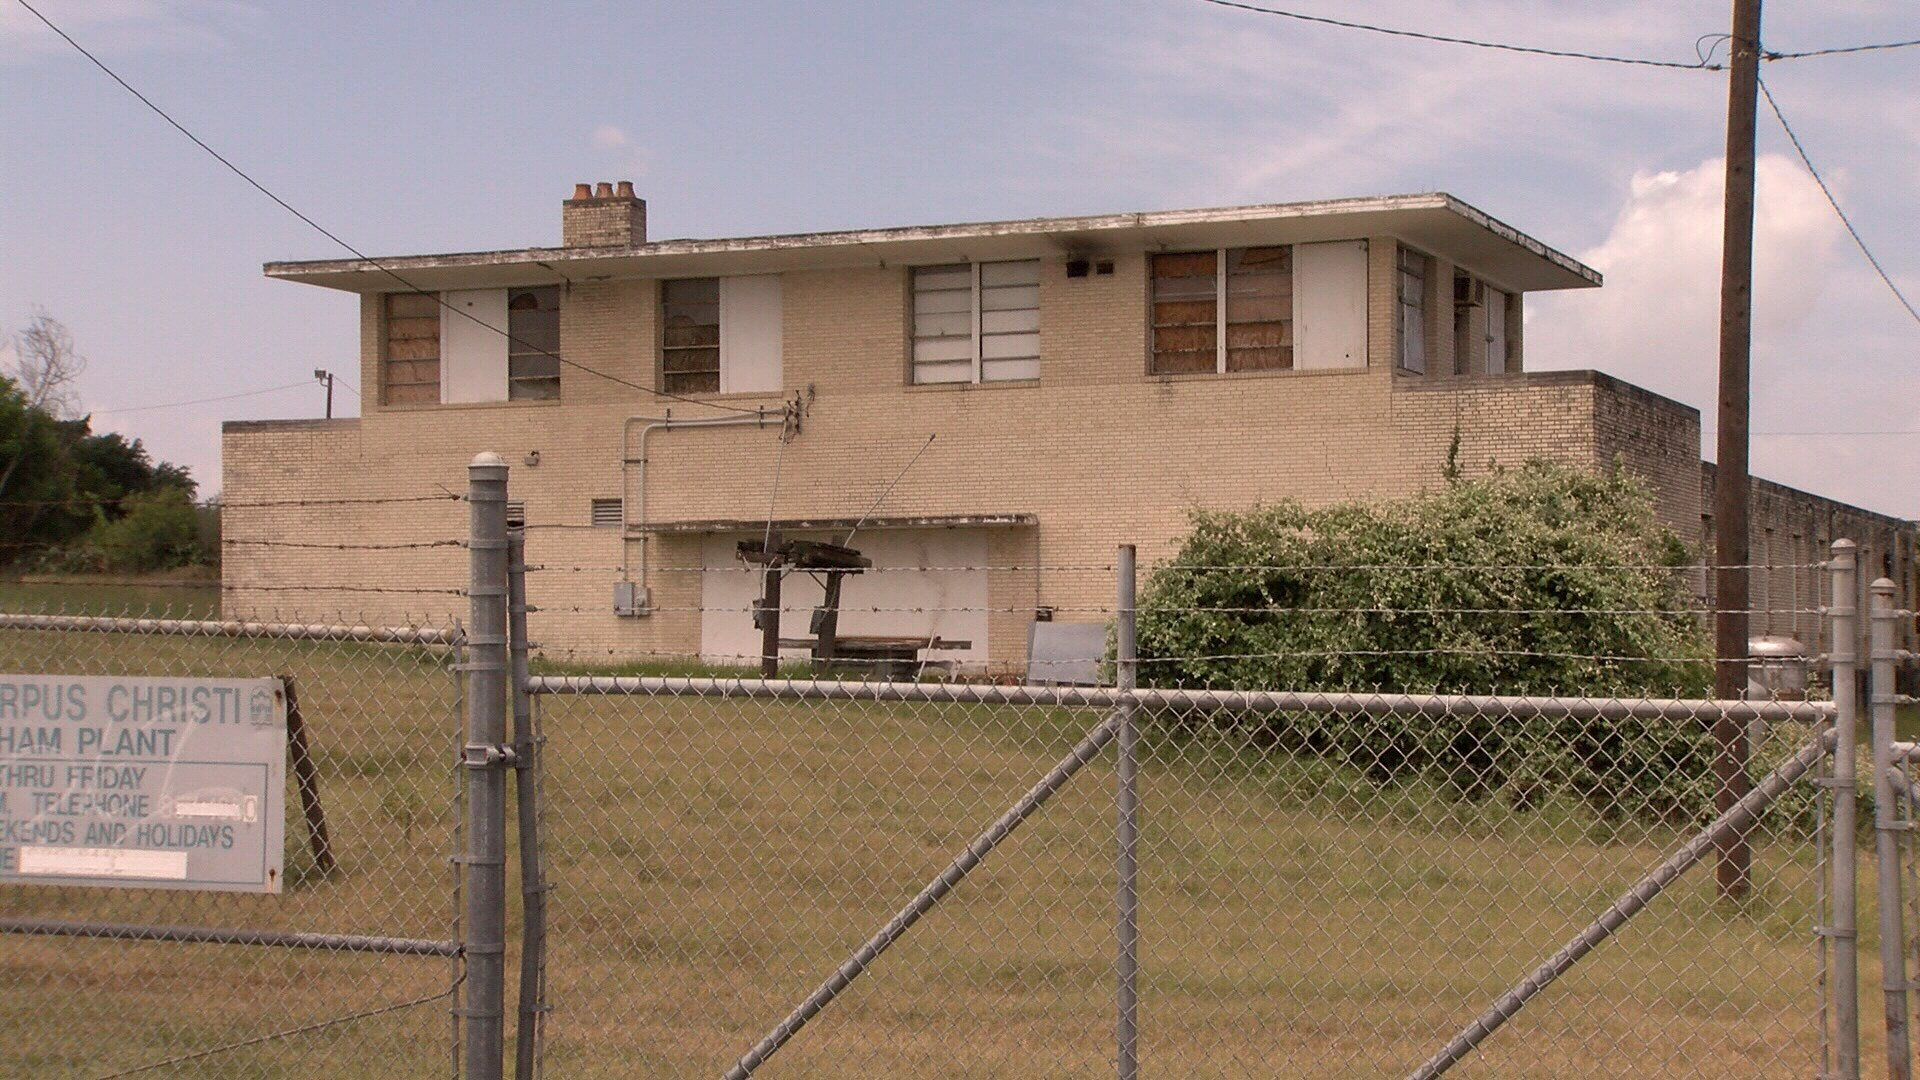 City staff say the old John W. Cunningham Water Plant off I-37 is ripe for redevelopment. (KRIS 6 News)